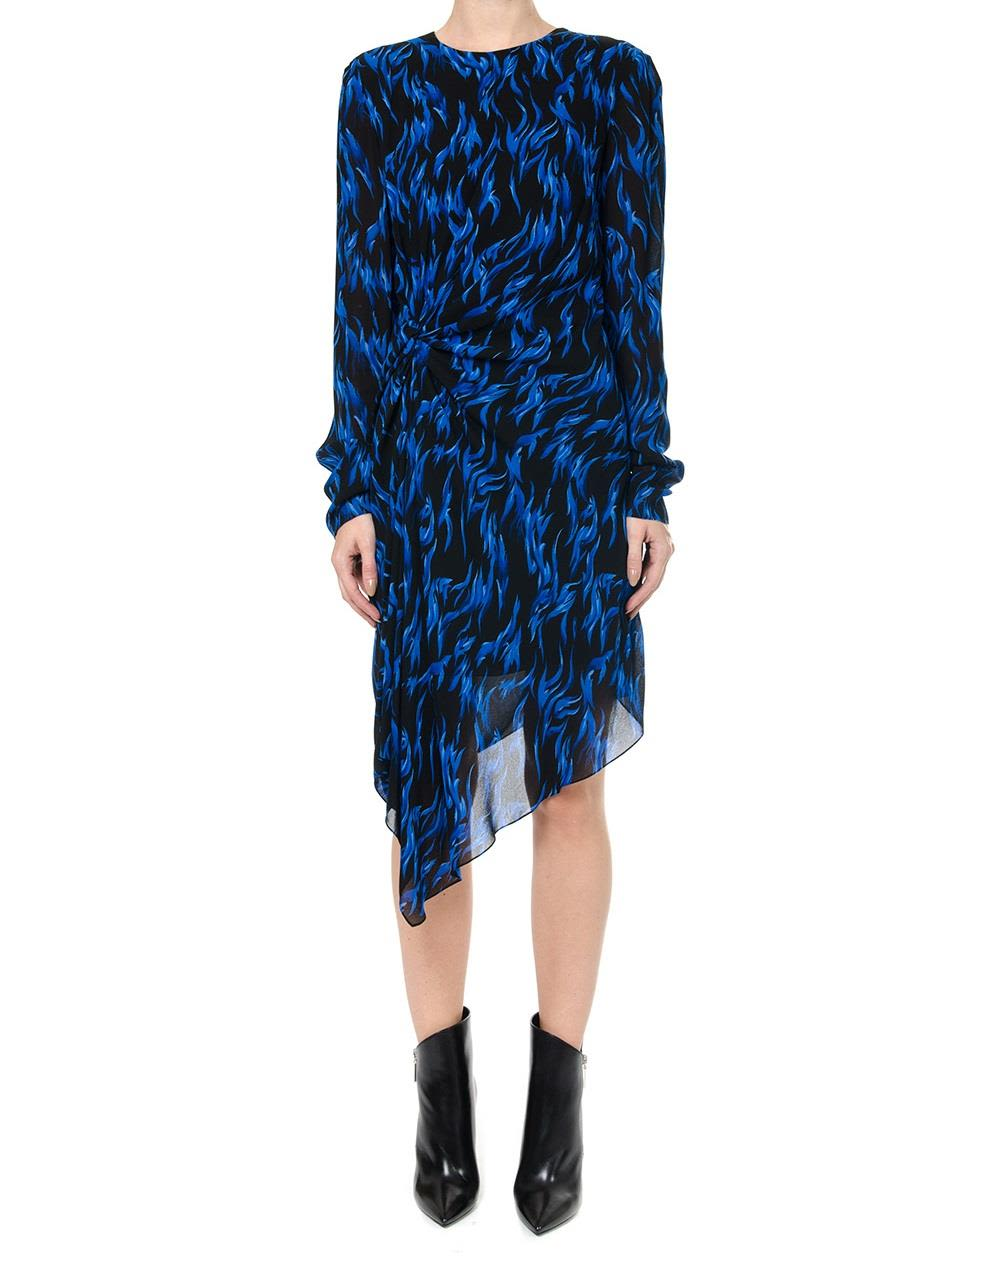 Saint Laurent Asymmetrical Dress In Flame Print With Draped Side